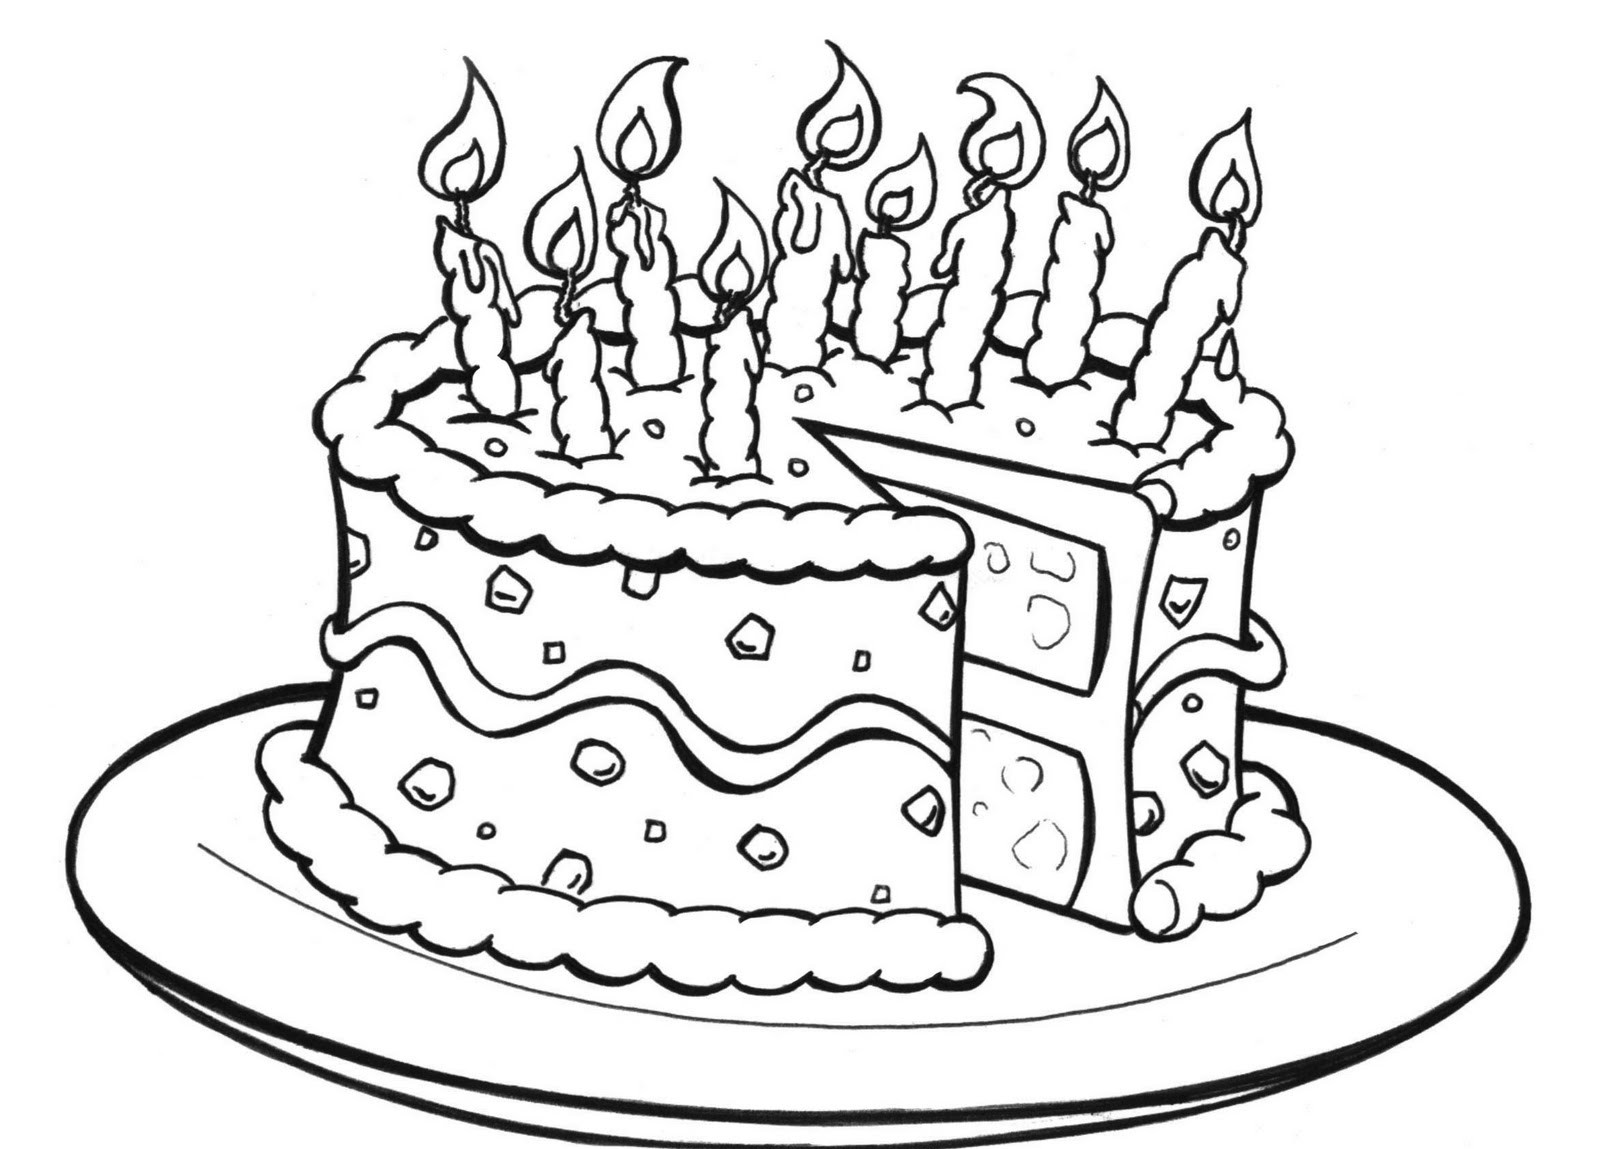 coloring cake pages the spinsterhood diaries thursday coloring page birthday cake coloring pages